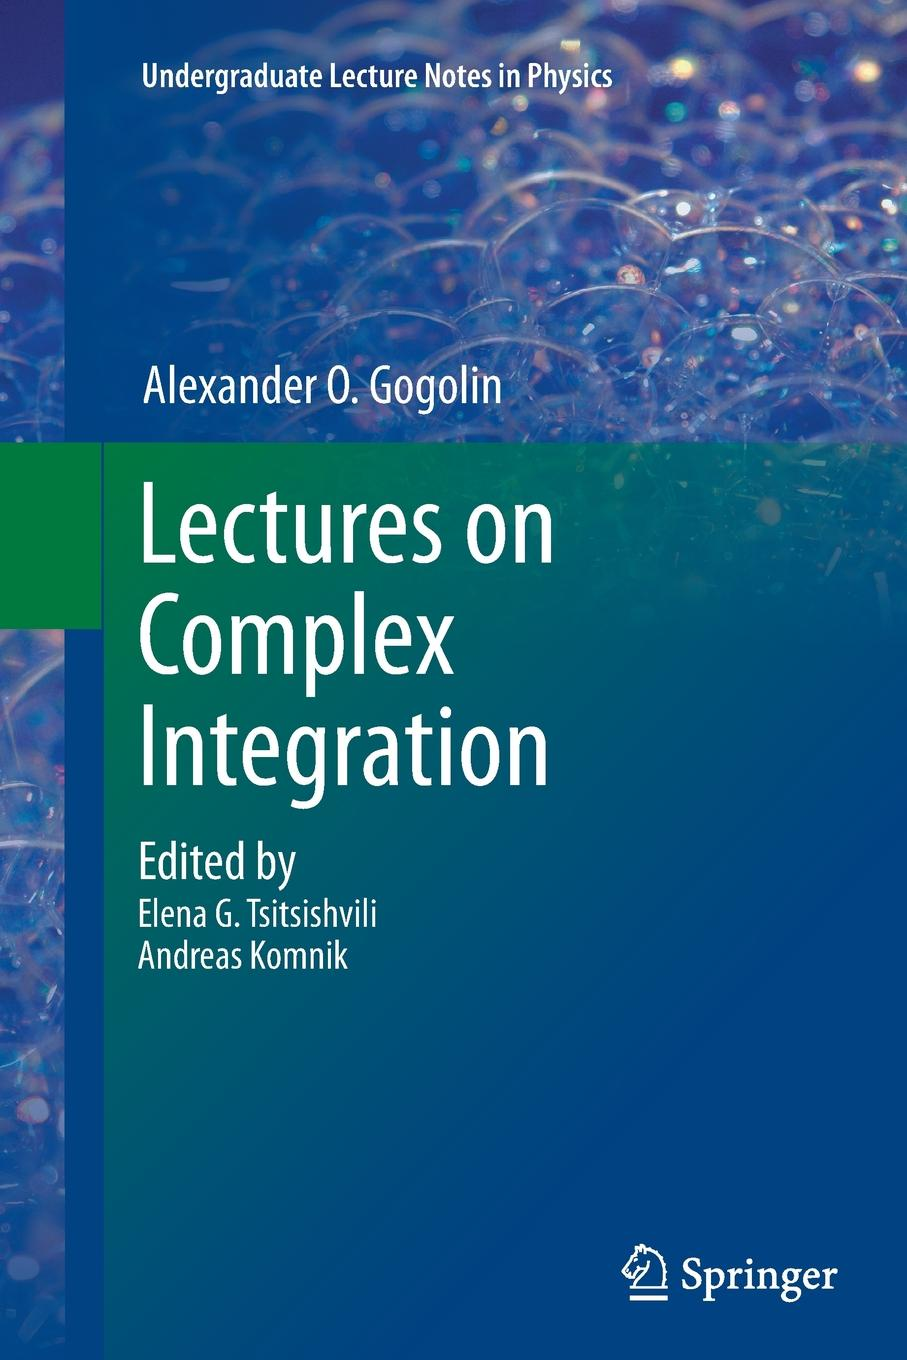 Alexander O. Gogolin Lectures on Complex Integration